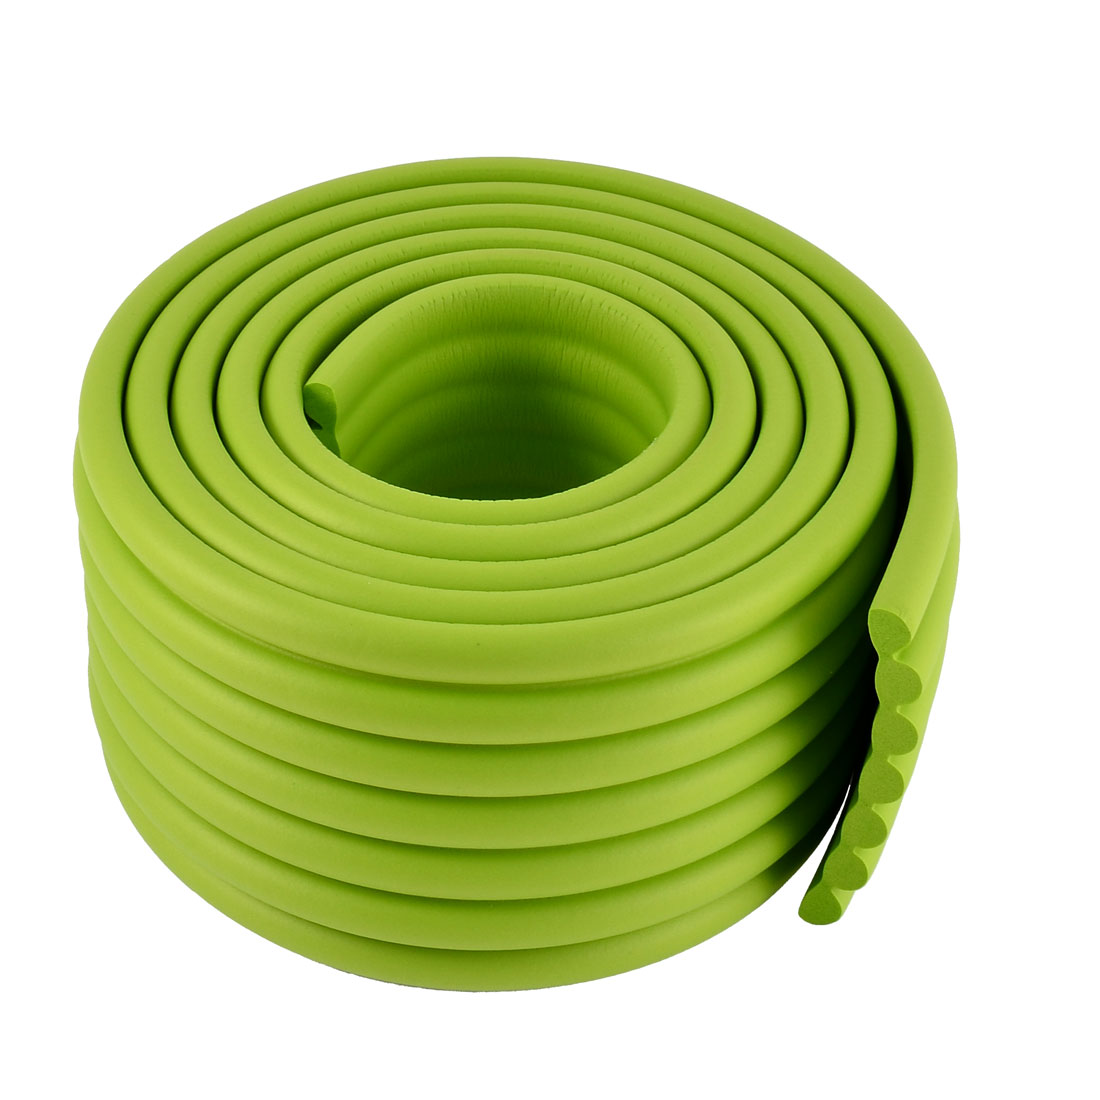 Furniture Corner Edge Safety Protection Cushion Guard 2M Long Green